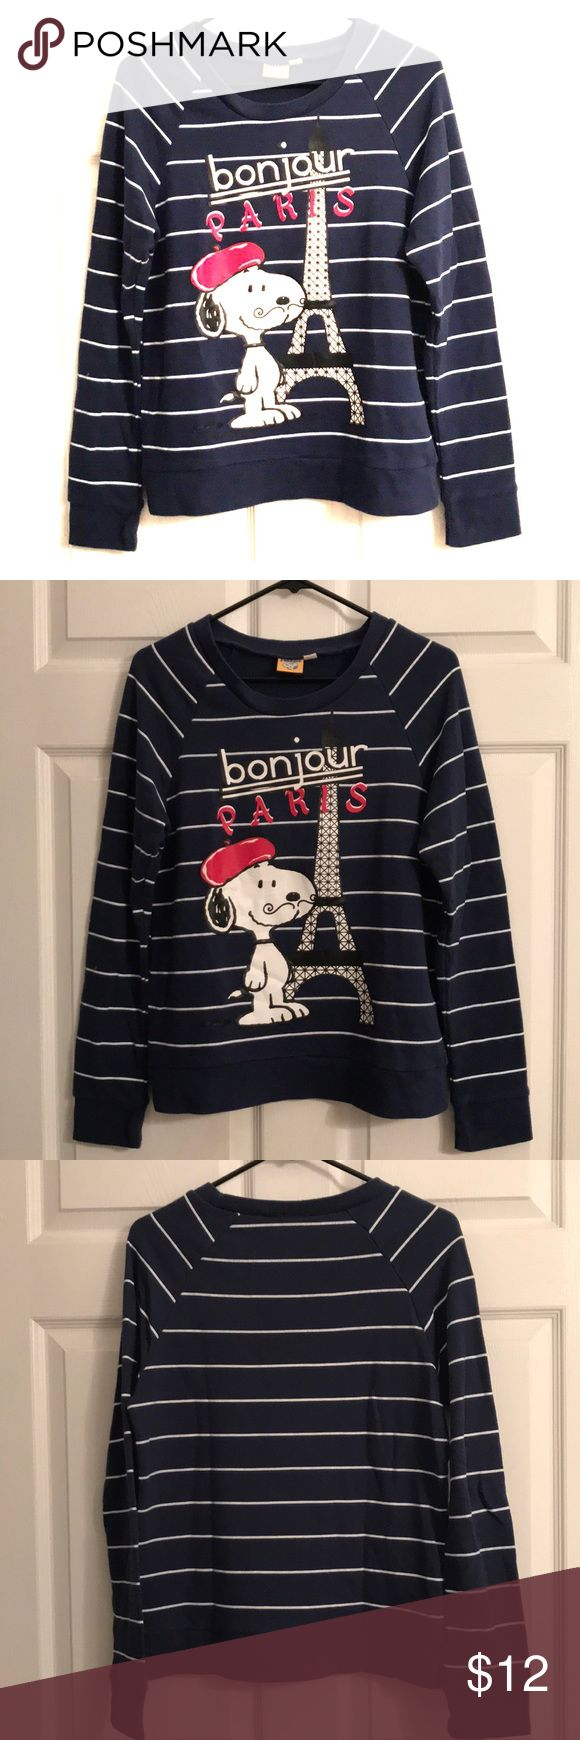 """Snoopy """"Bonjour Paris"""" Sweatshirt C'est la vie! Snoopy lovers and Francophiles alike need this super cute and comfy sweatshirt. Lightweight terry material on the inside. Only worn a few times. 🐾 Peanuts Tops Sweatshirts & Hoodies"""